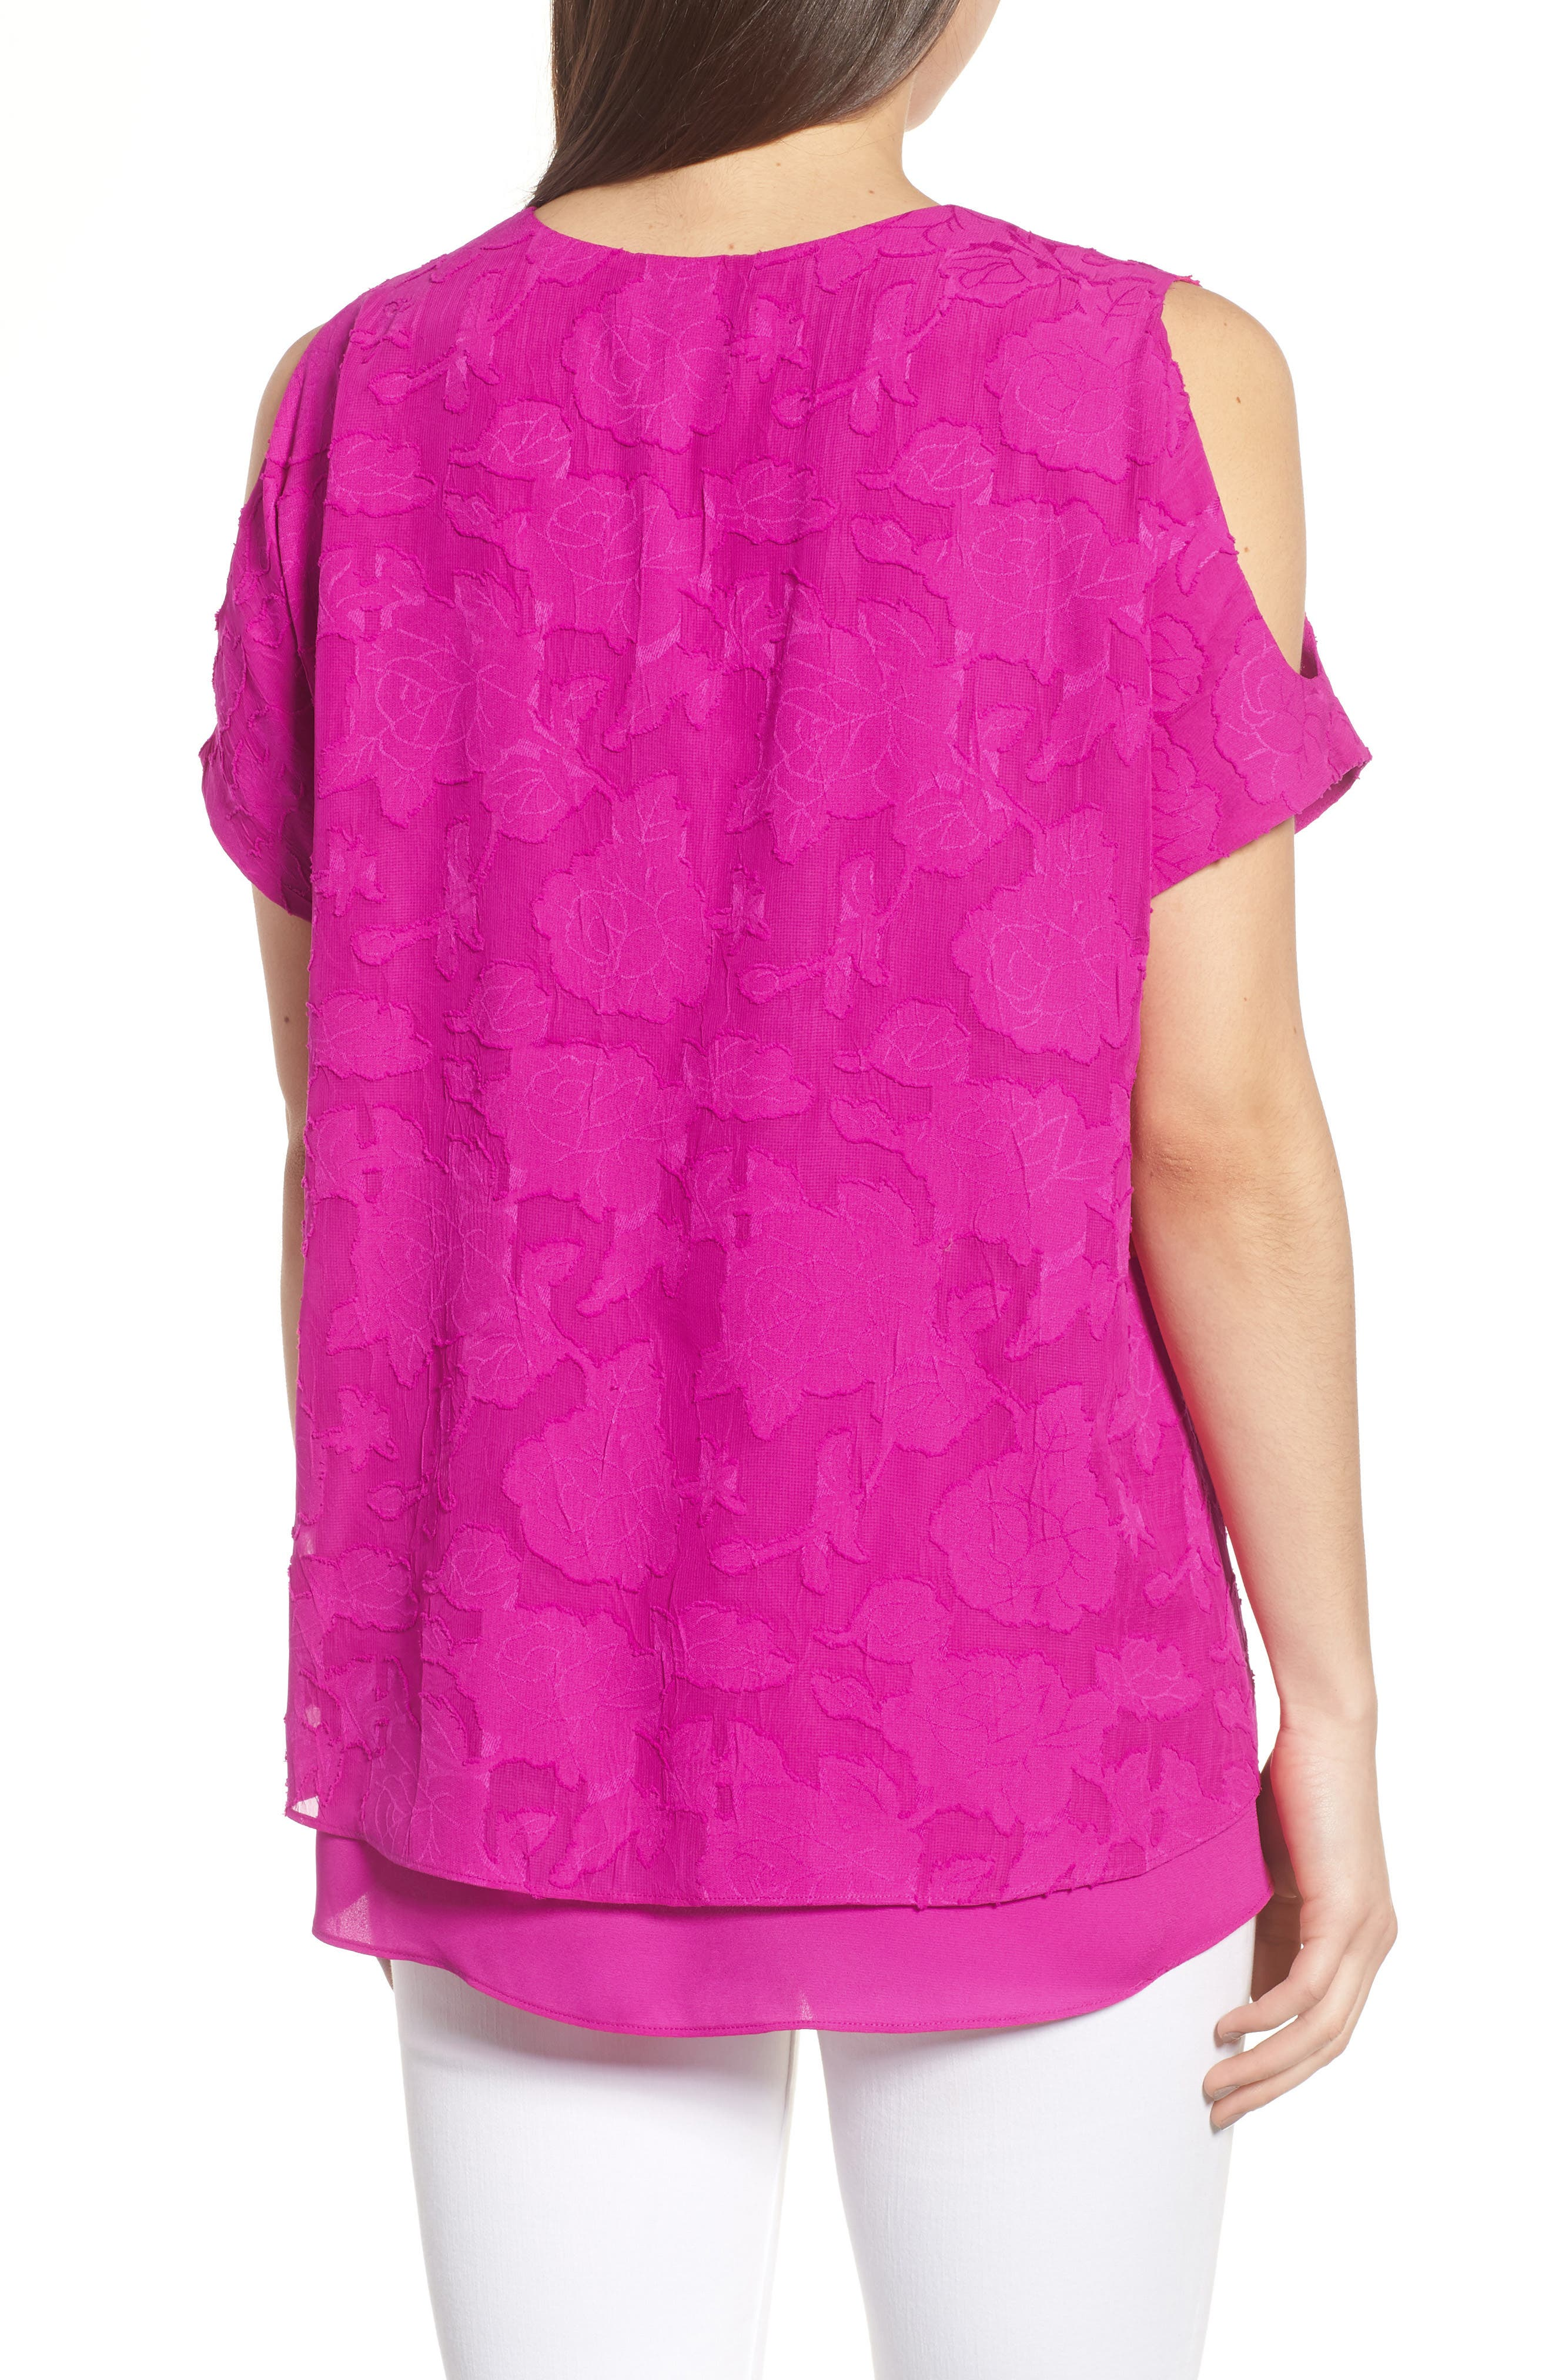 Floral Jacquard Cold Shoulder Top,                             Alternate thumbnail 2, color,                             686-Pink Nouveau